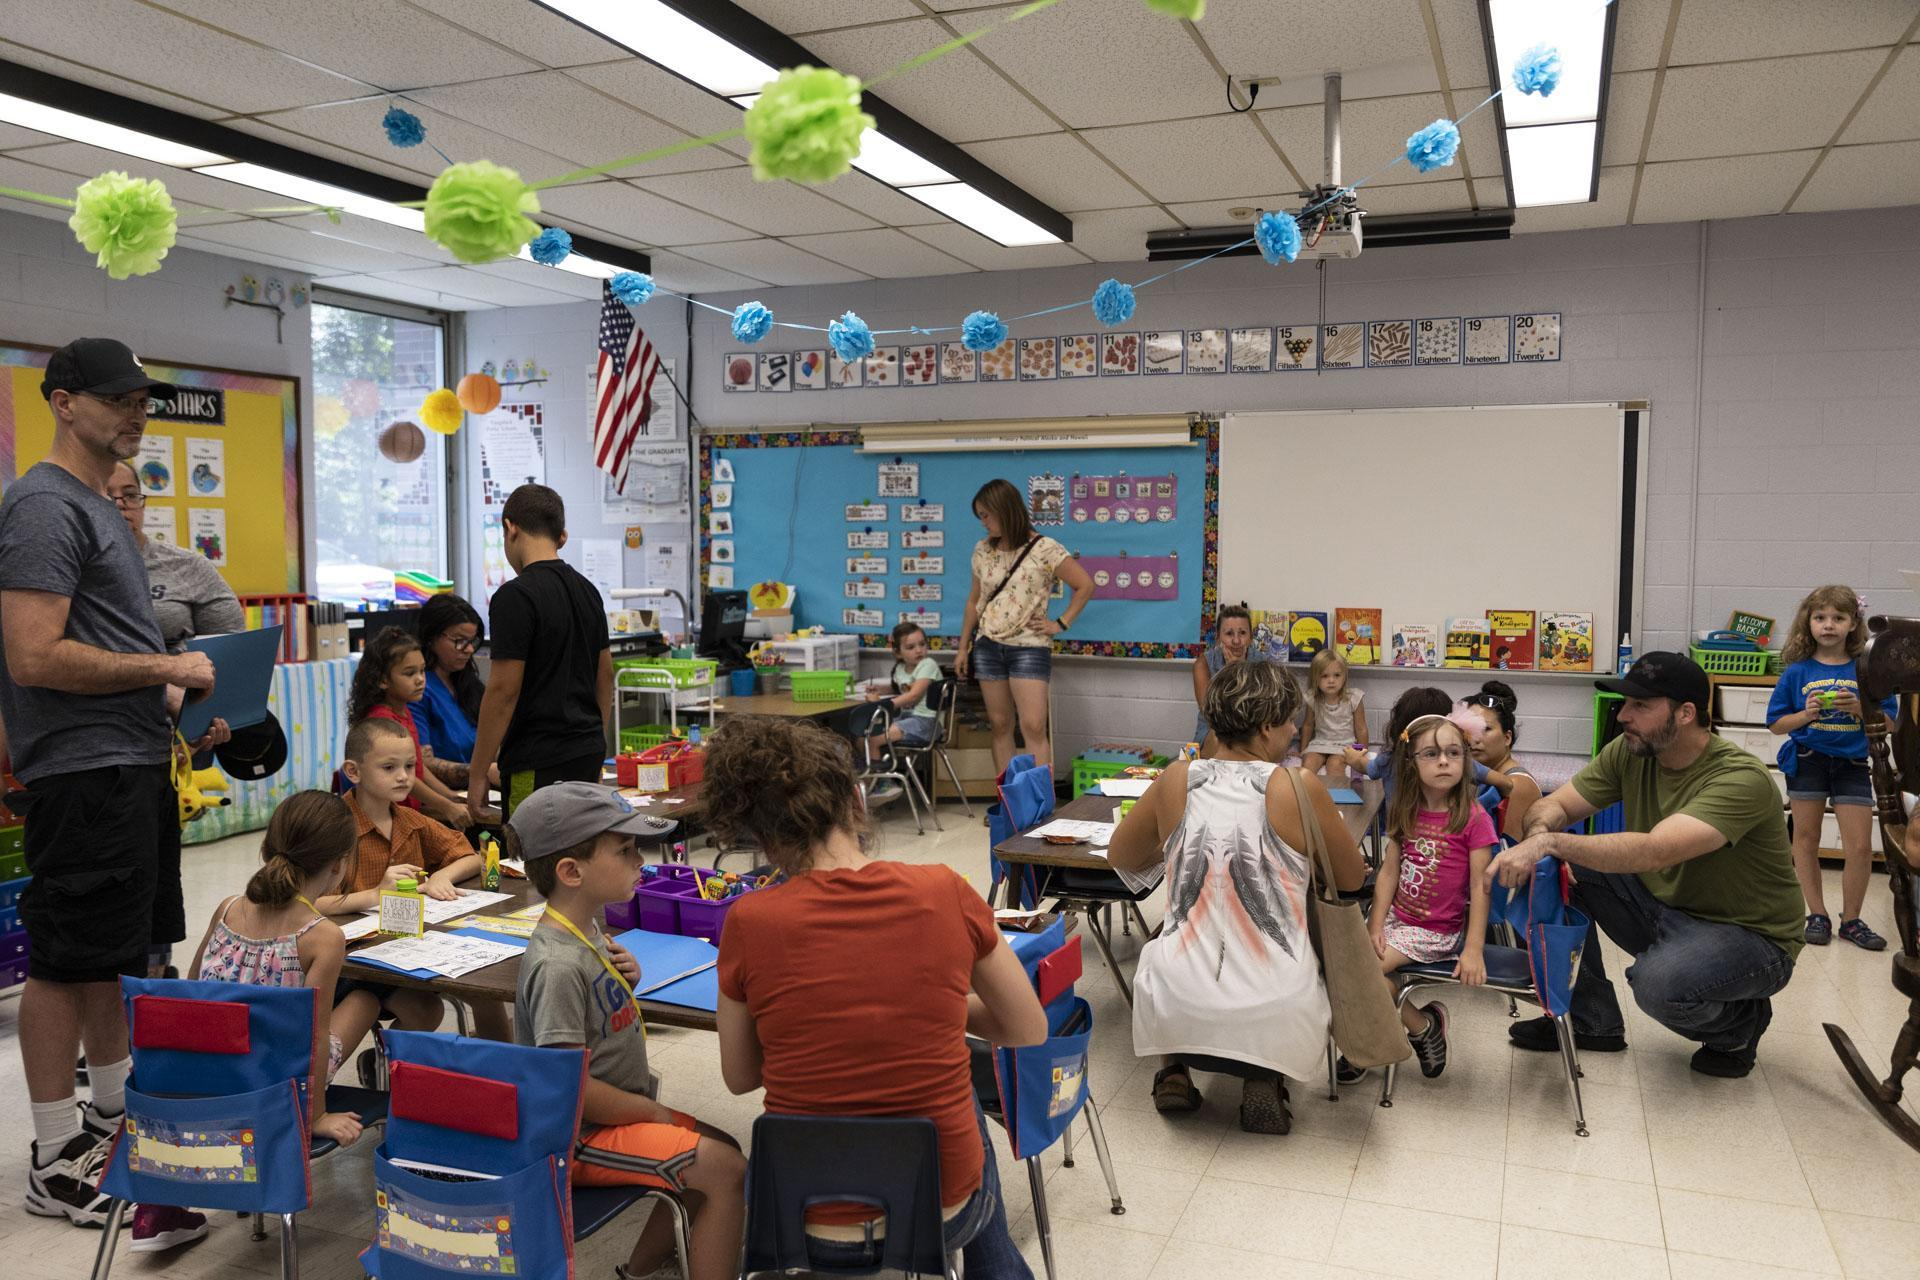 Students and parents in classroom